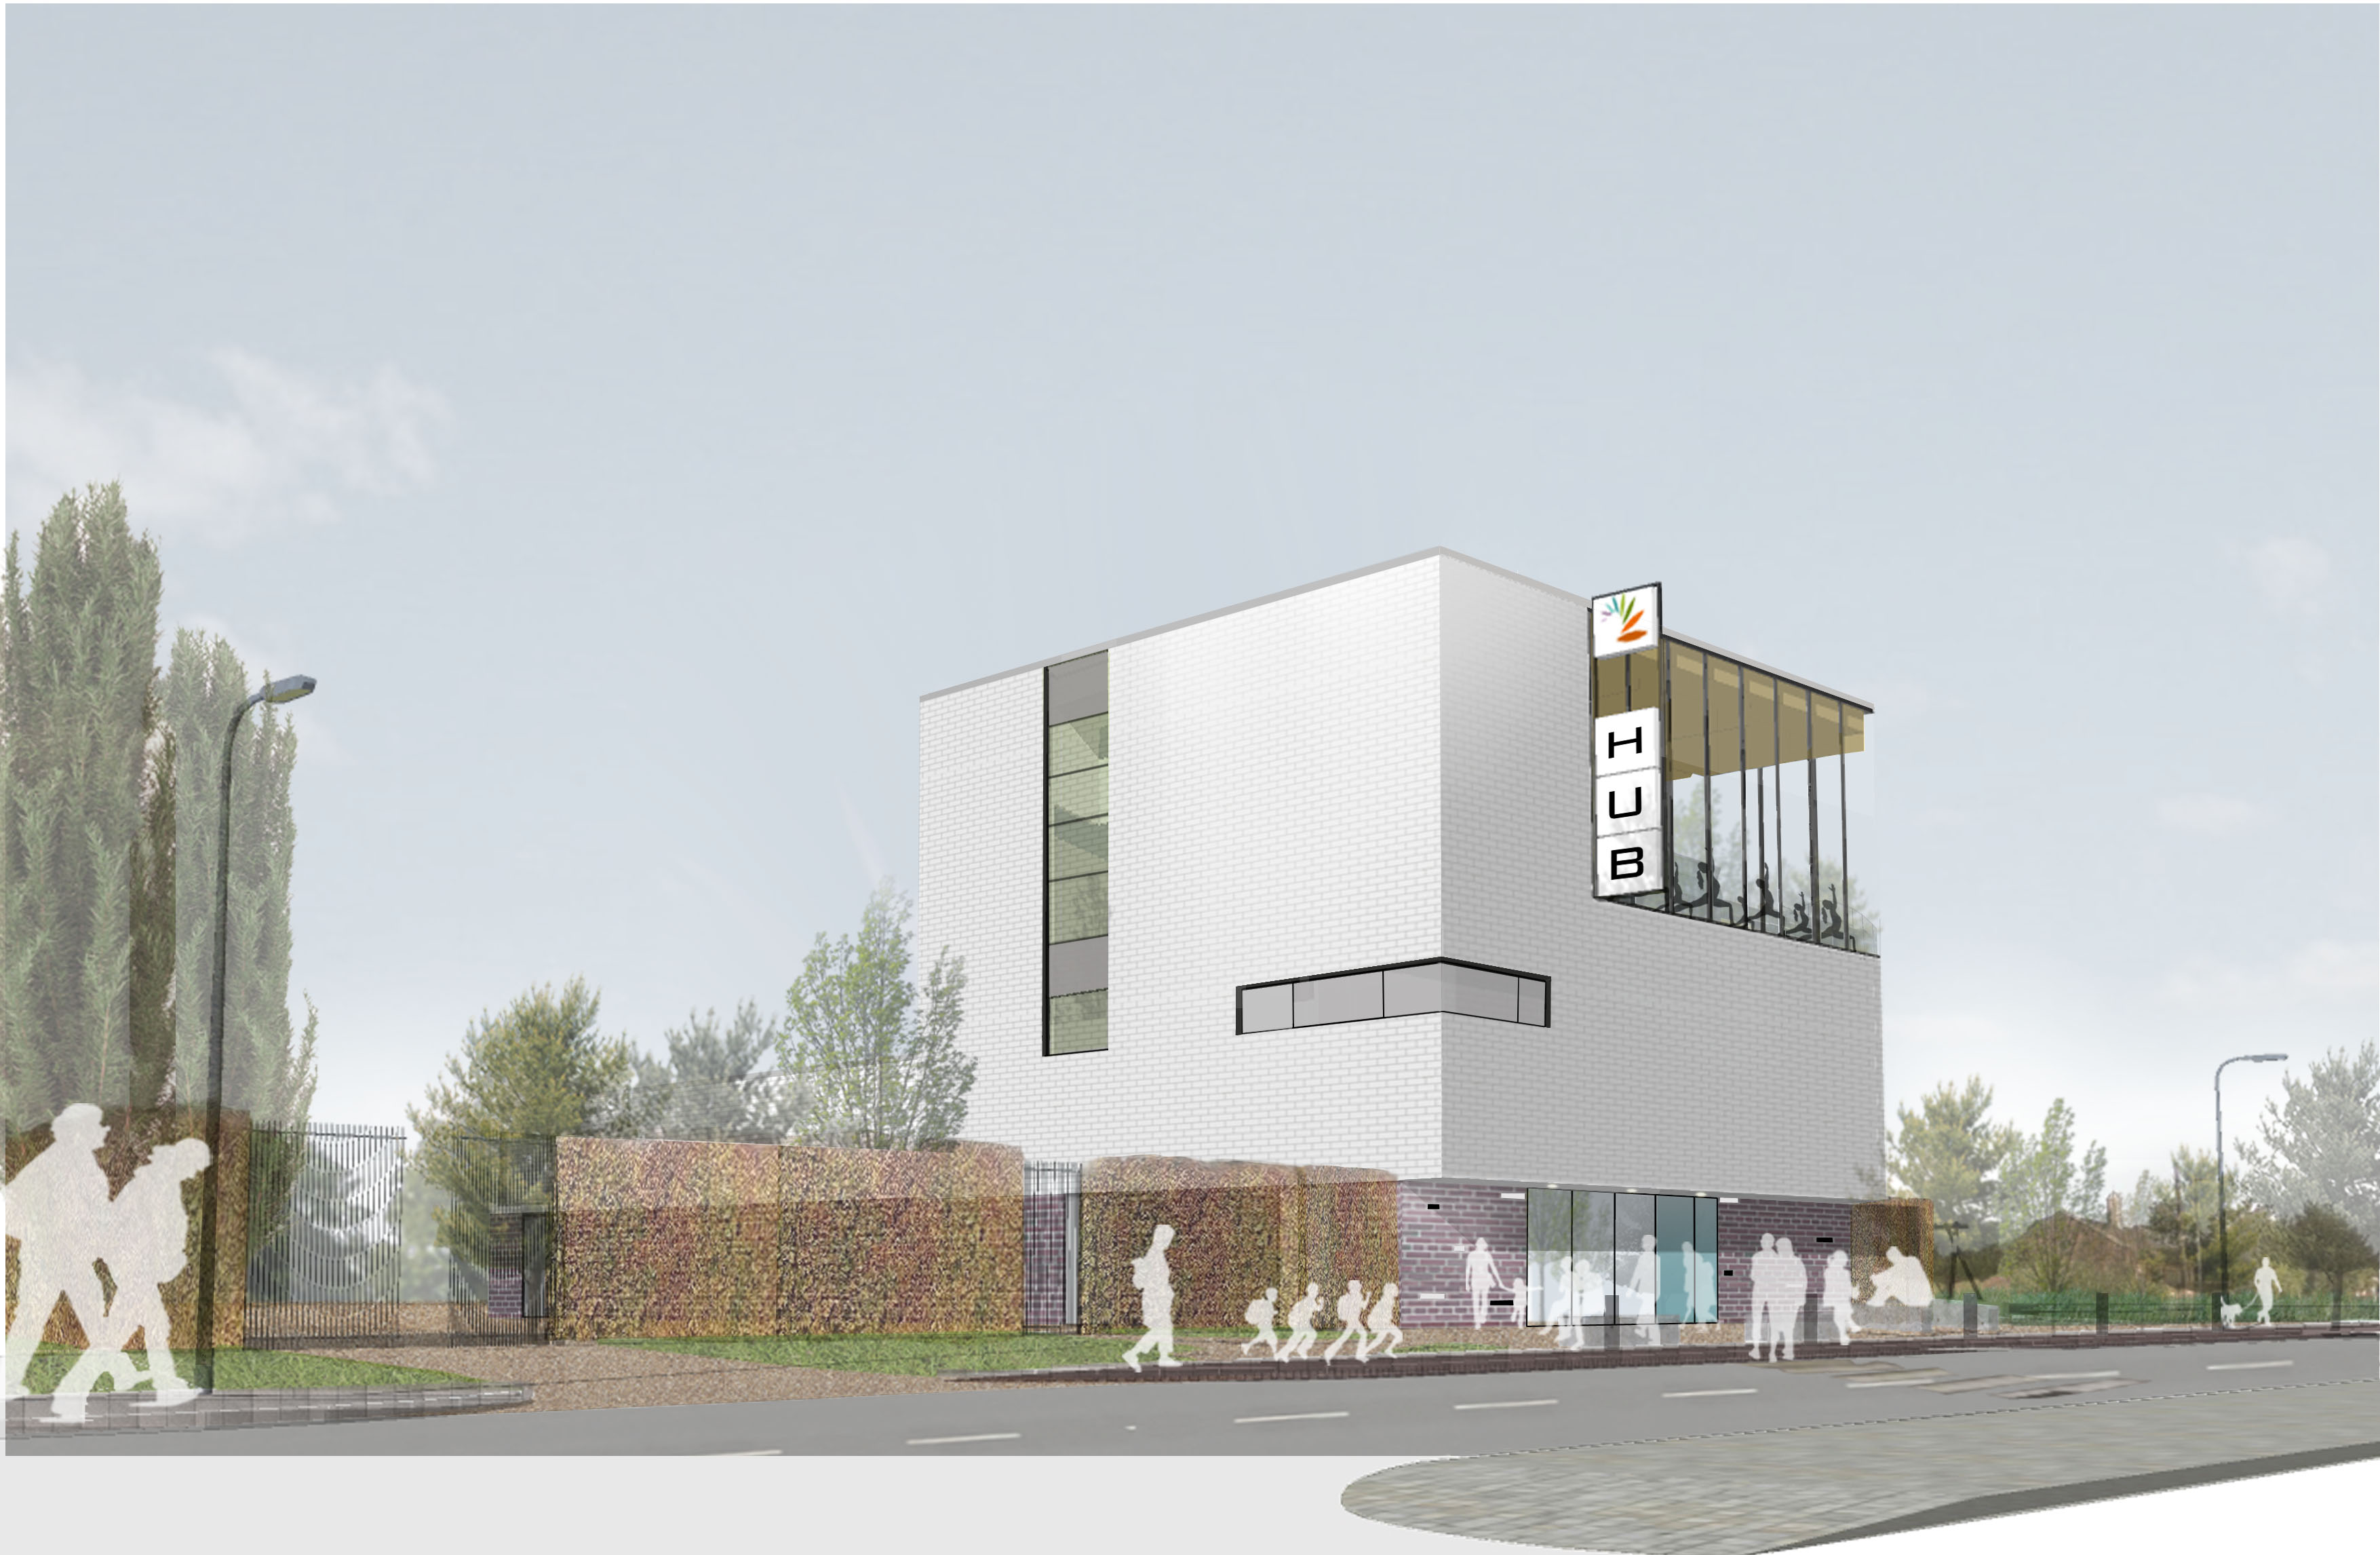 Bewsey and Dallam Community Hub - North view